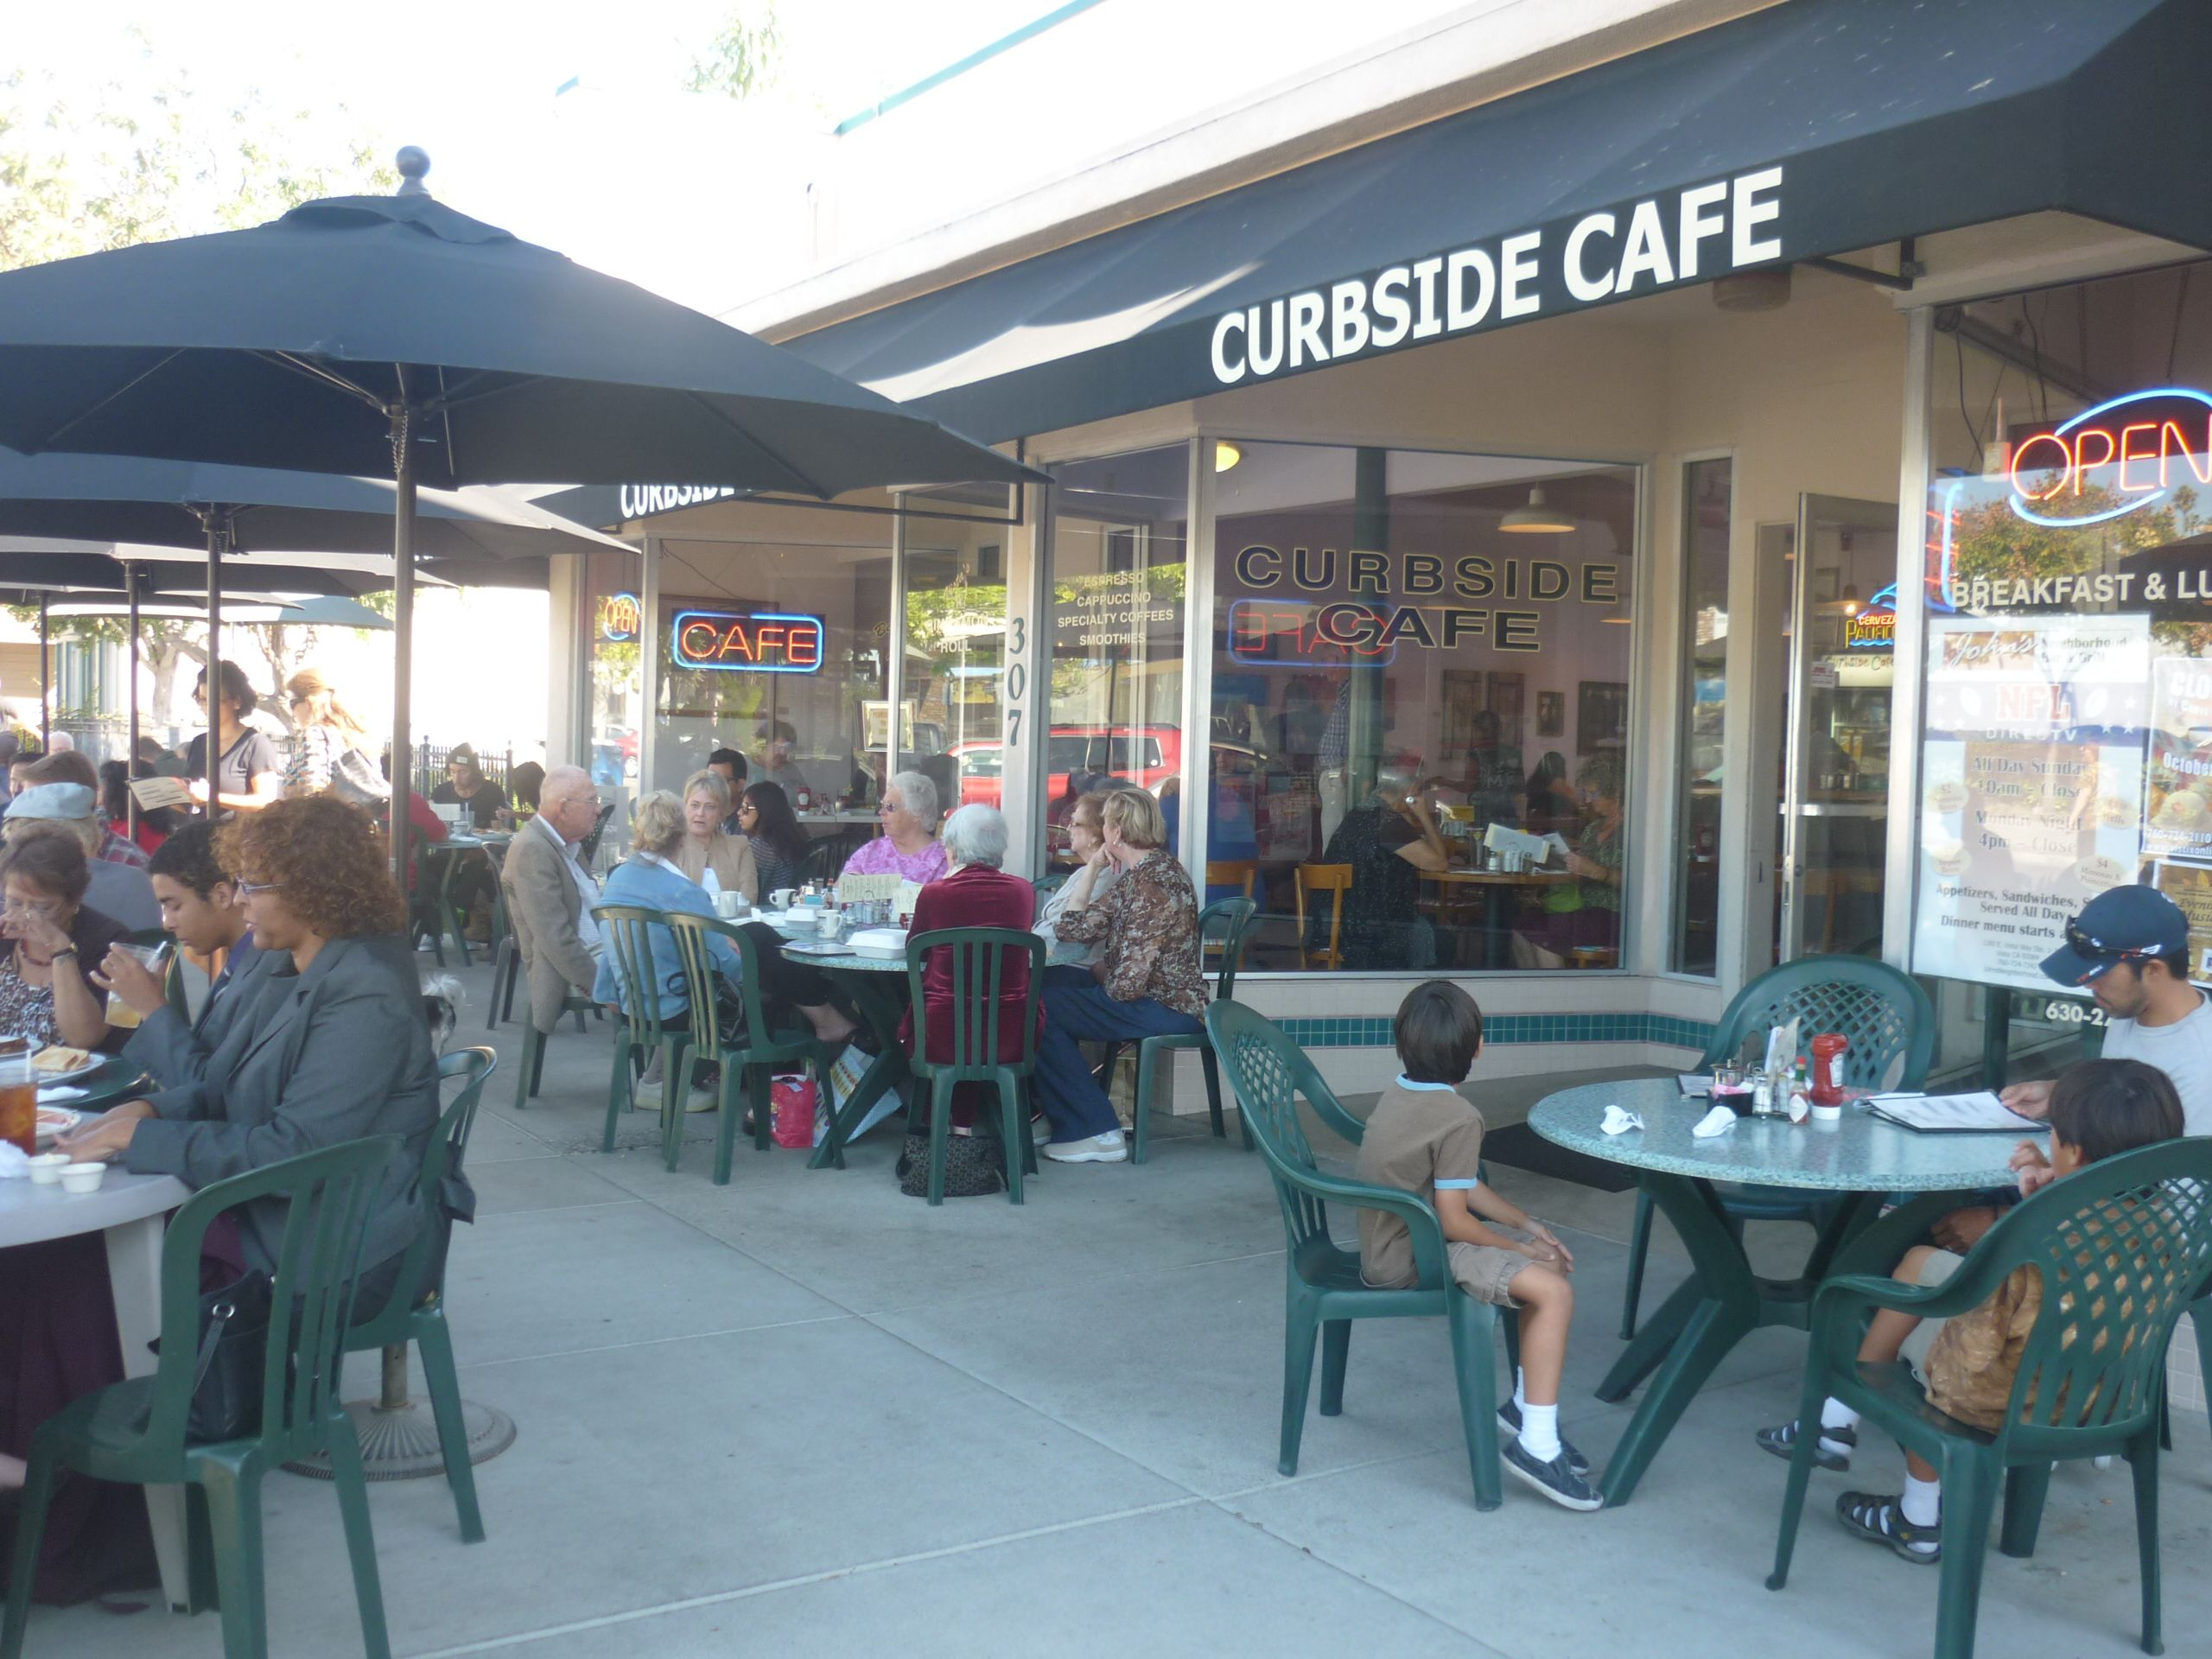 The Curbside Cafe On Main Street In Vista California Has Great Breakfast And Brunch Curbsidecafe